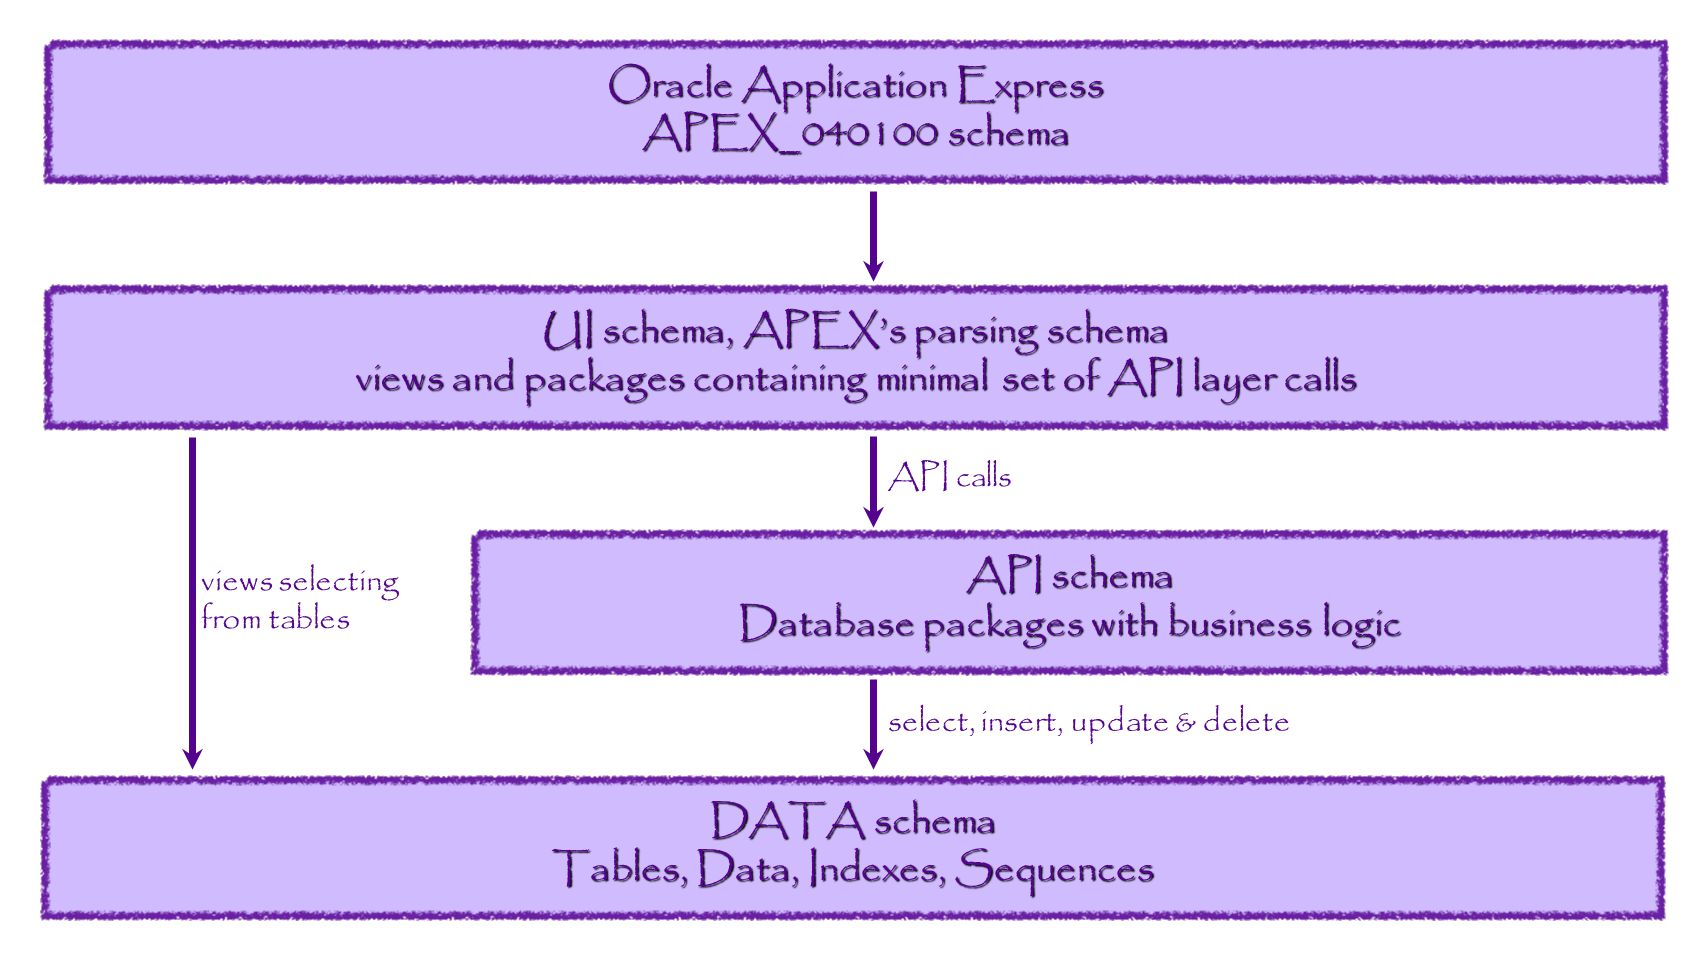 Oracle Application Express APEX_040100 schema